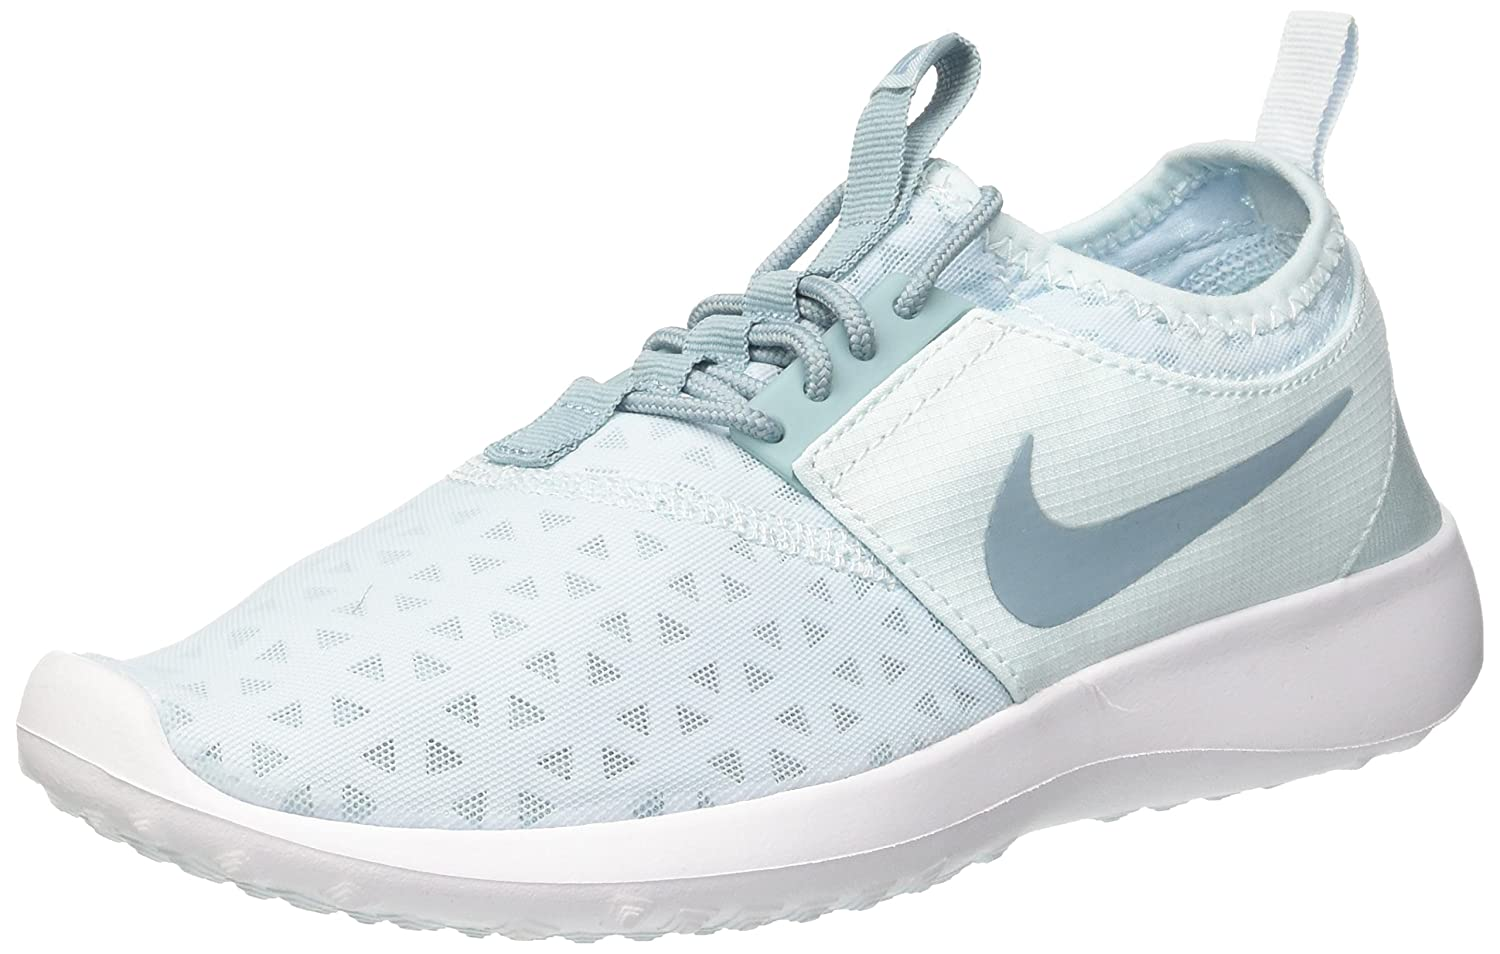 NIKE Women's Juvenate Running Shoe B001CZDWF2 6.5 B(M) US|Glacier Blue/Mica Blue/White